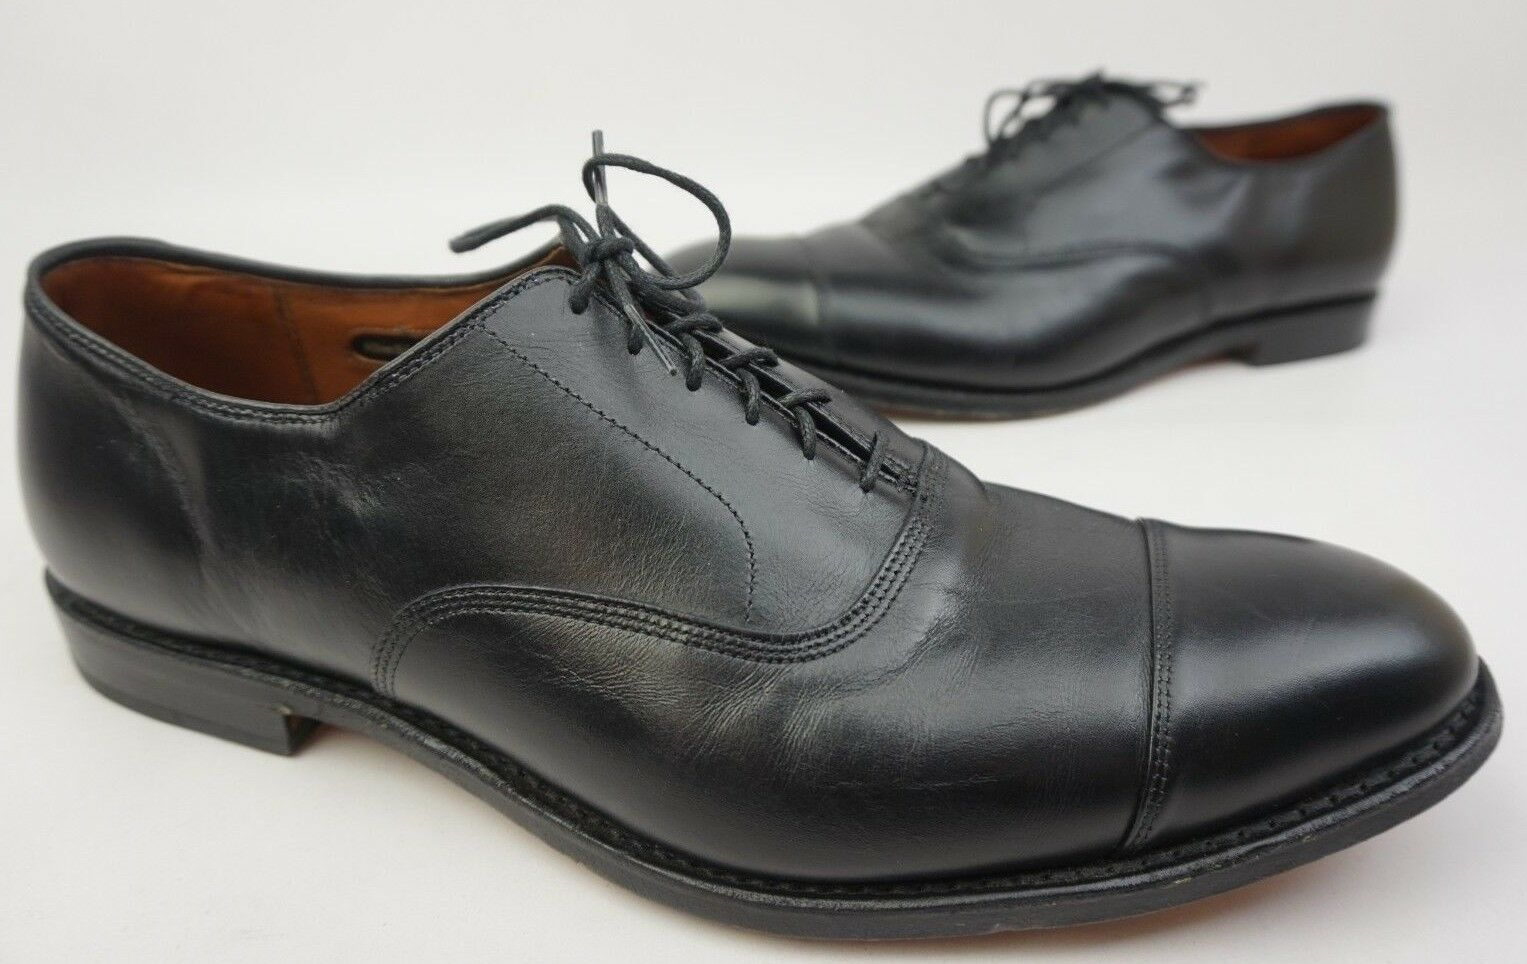 Allen Edmonds Park Avenue Negro Cuero Oxford Zapatos Talla 15 d  385